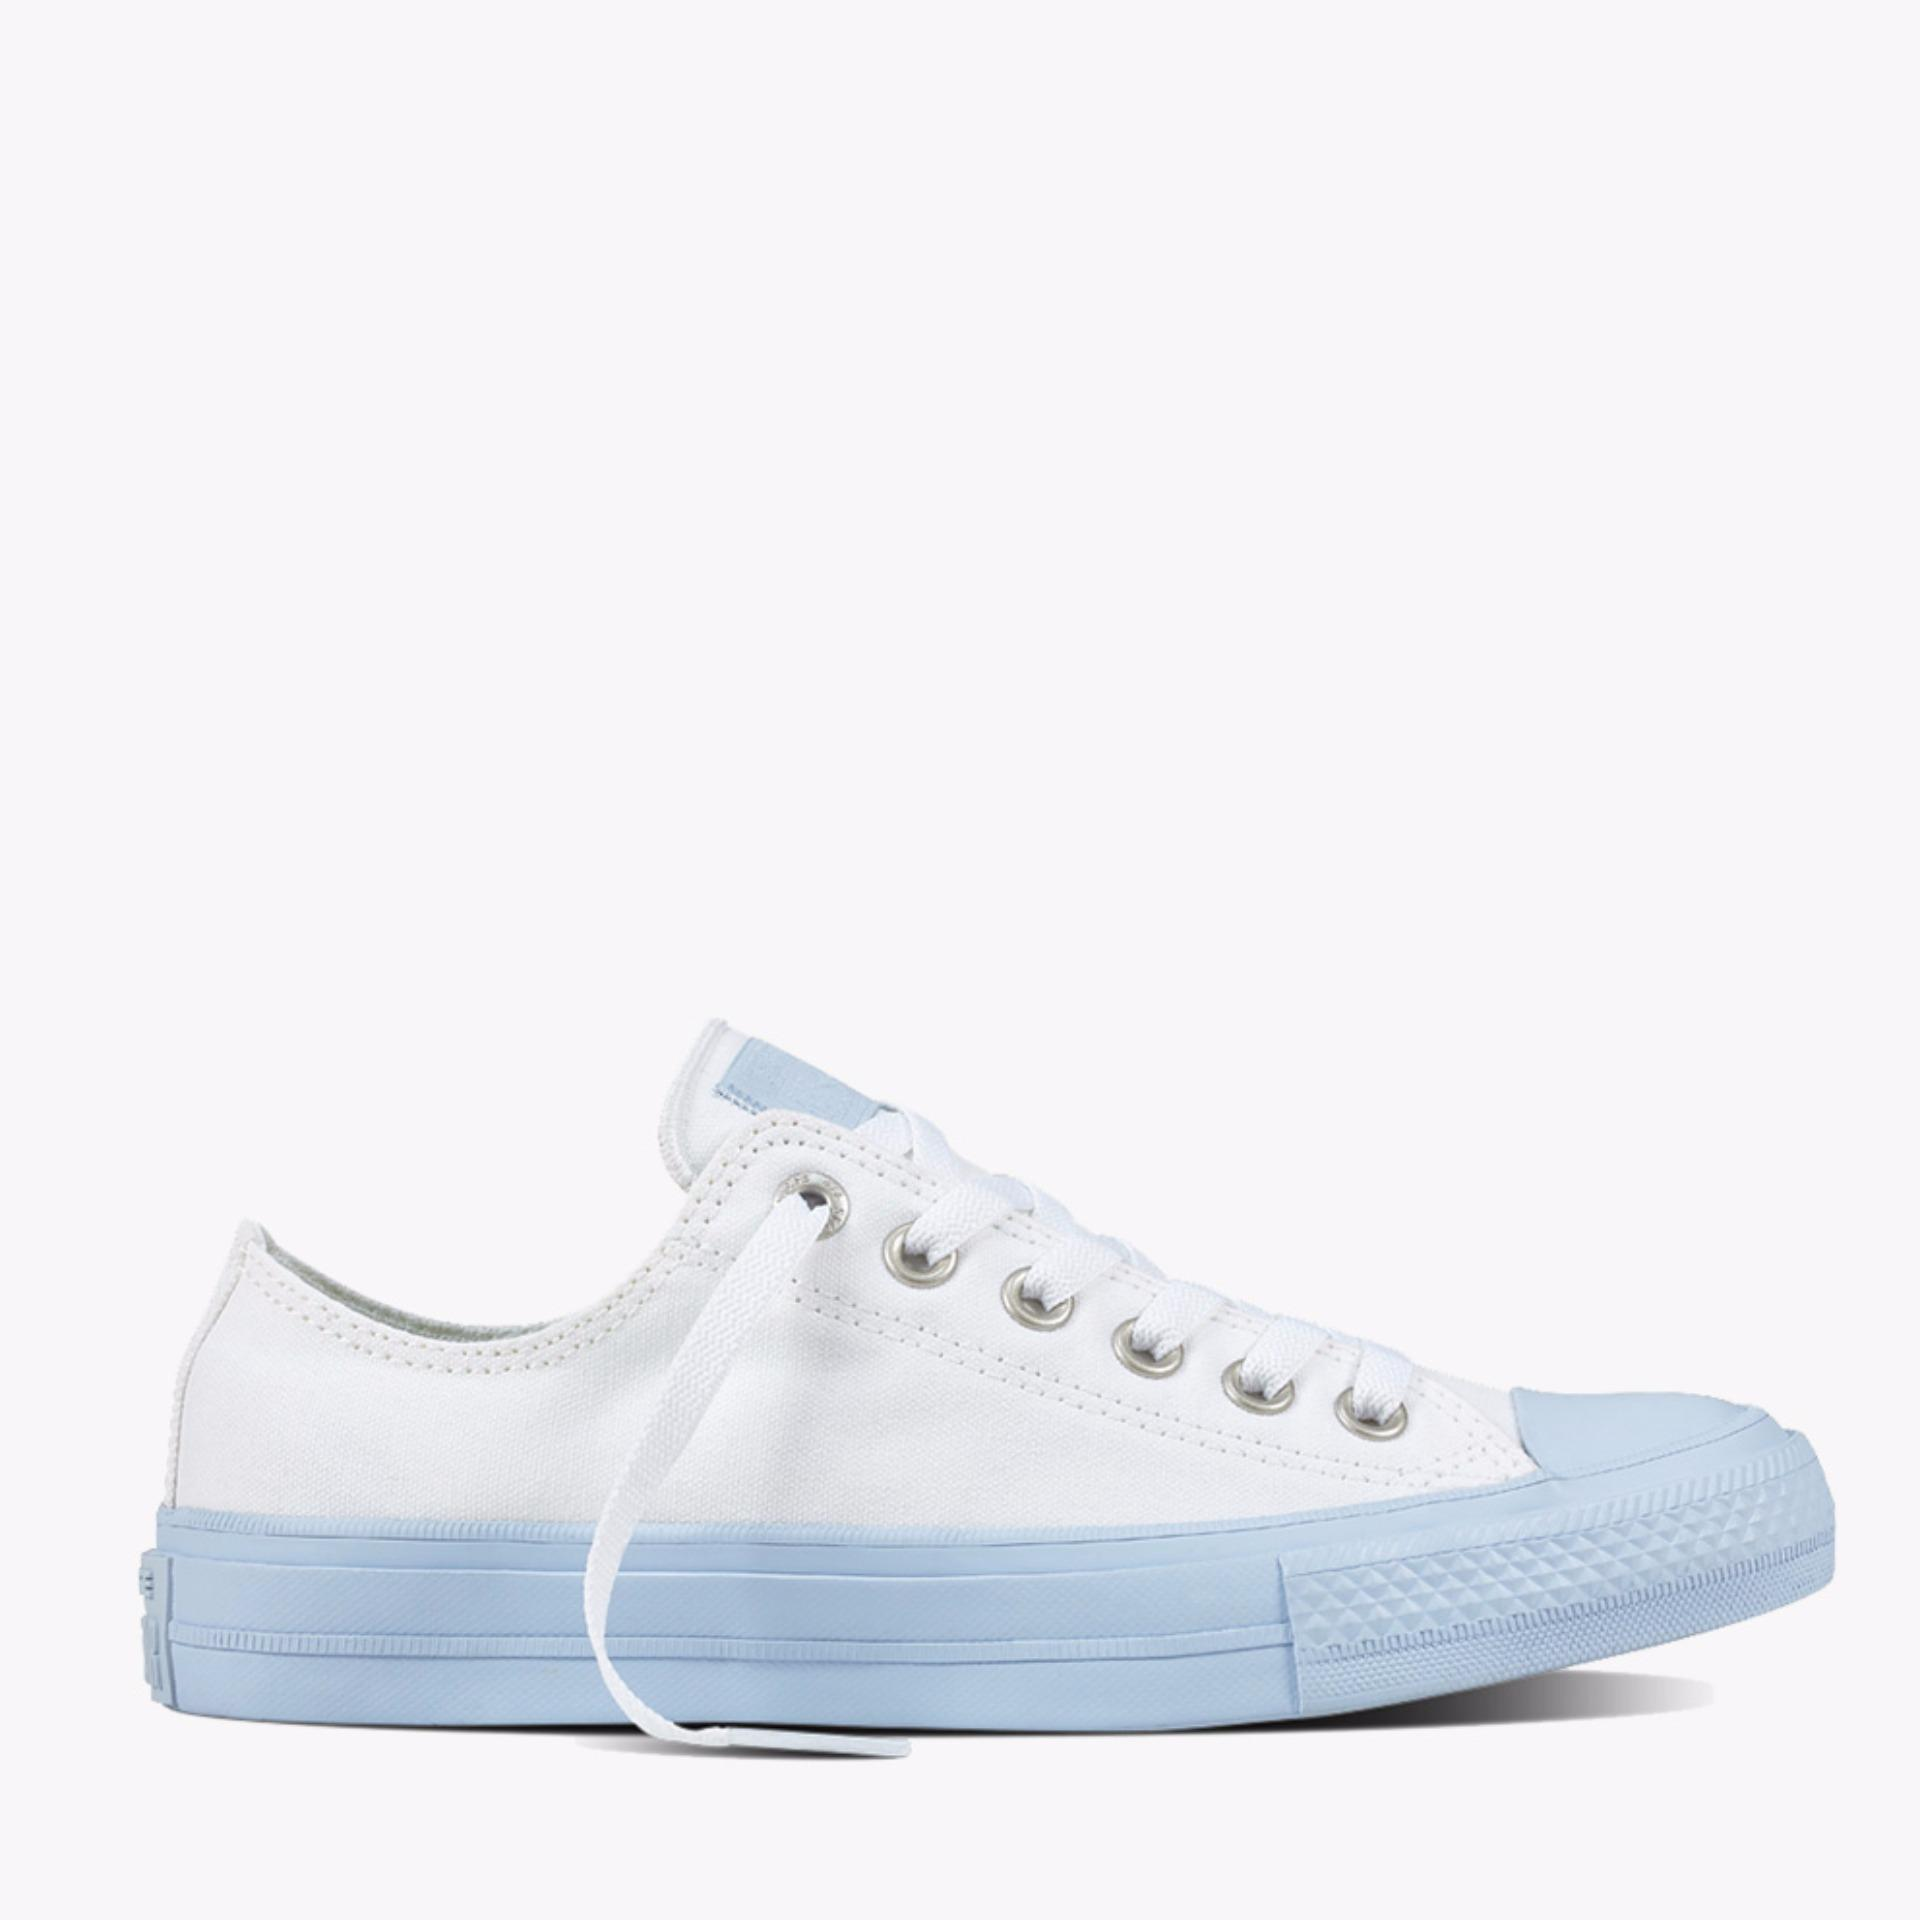 Harga Converse Chuck Taylor All Star Ii Ox Women S Sneaker Shoes Putih Baru Murah